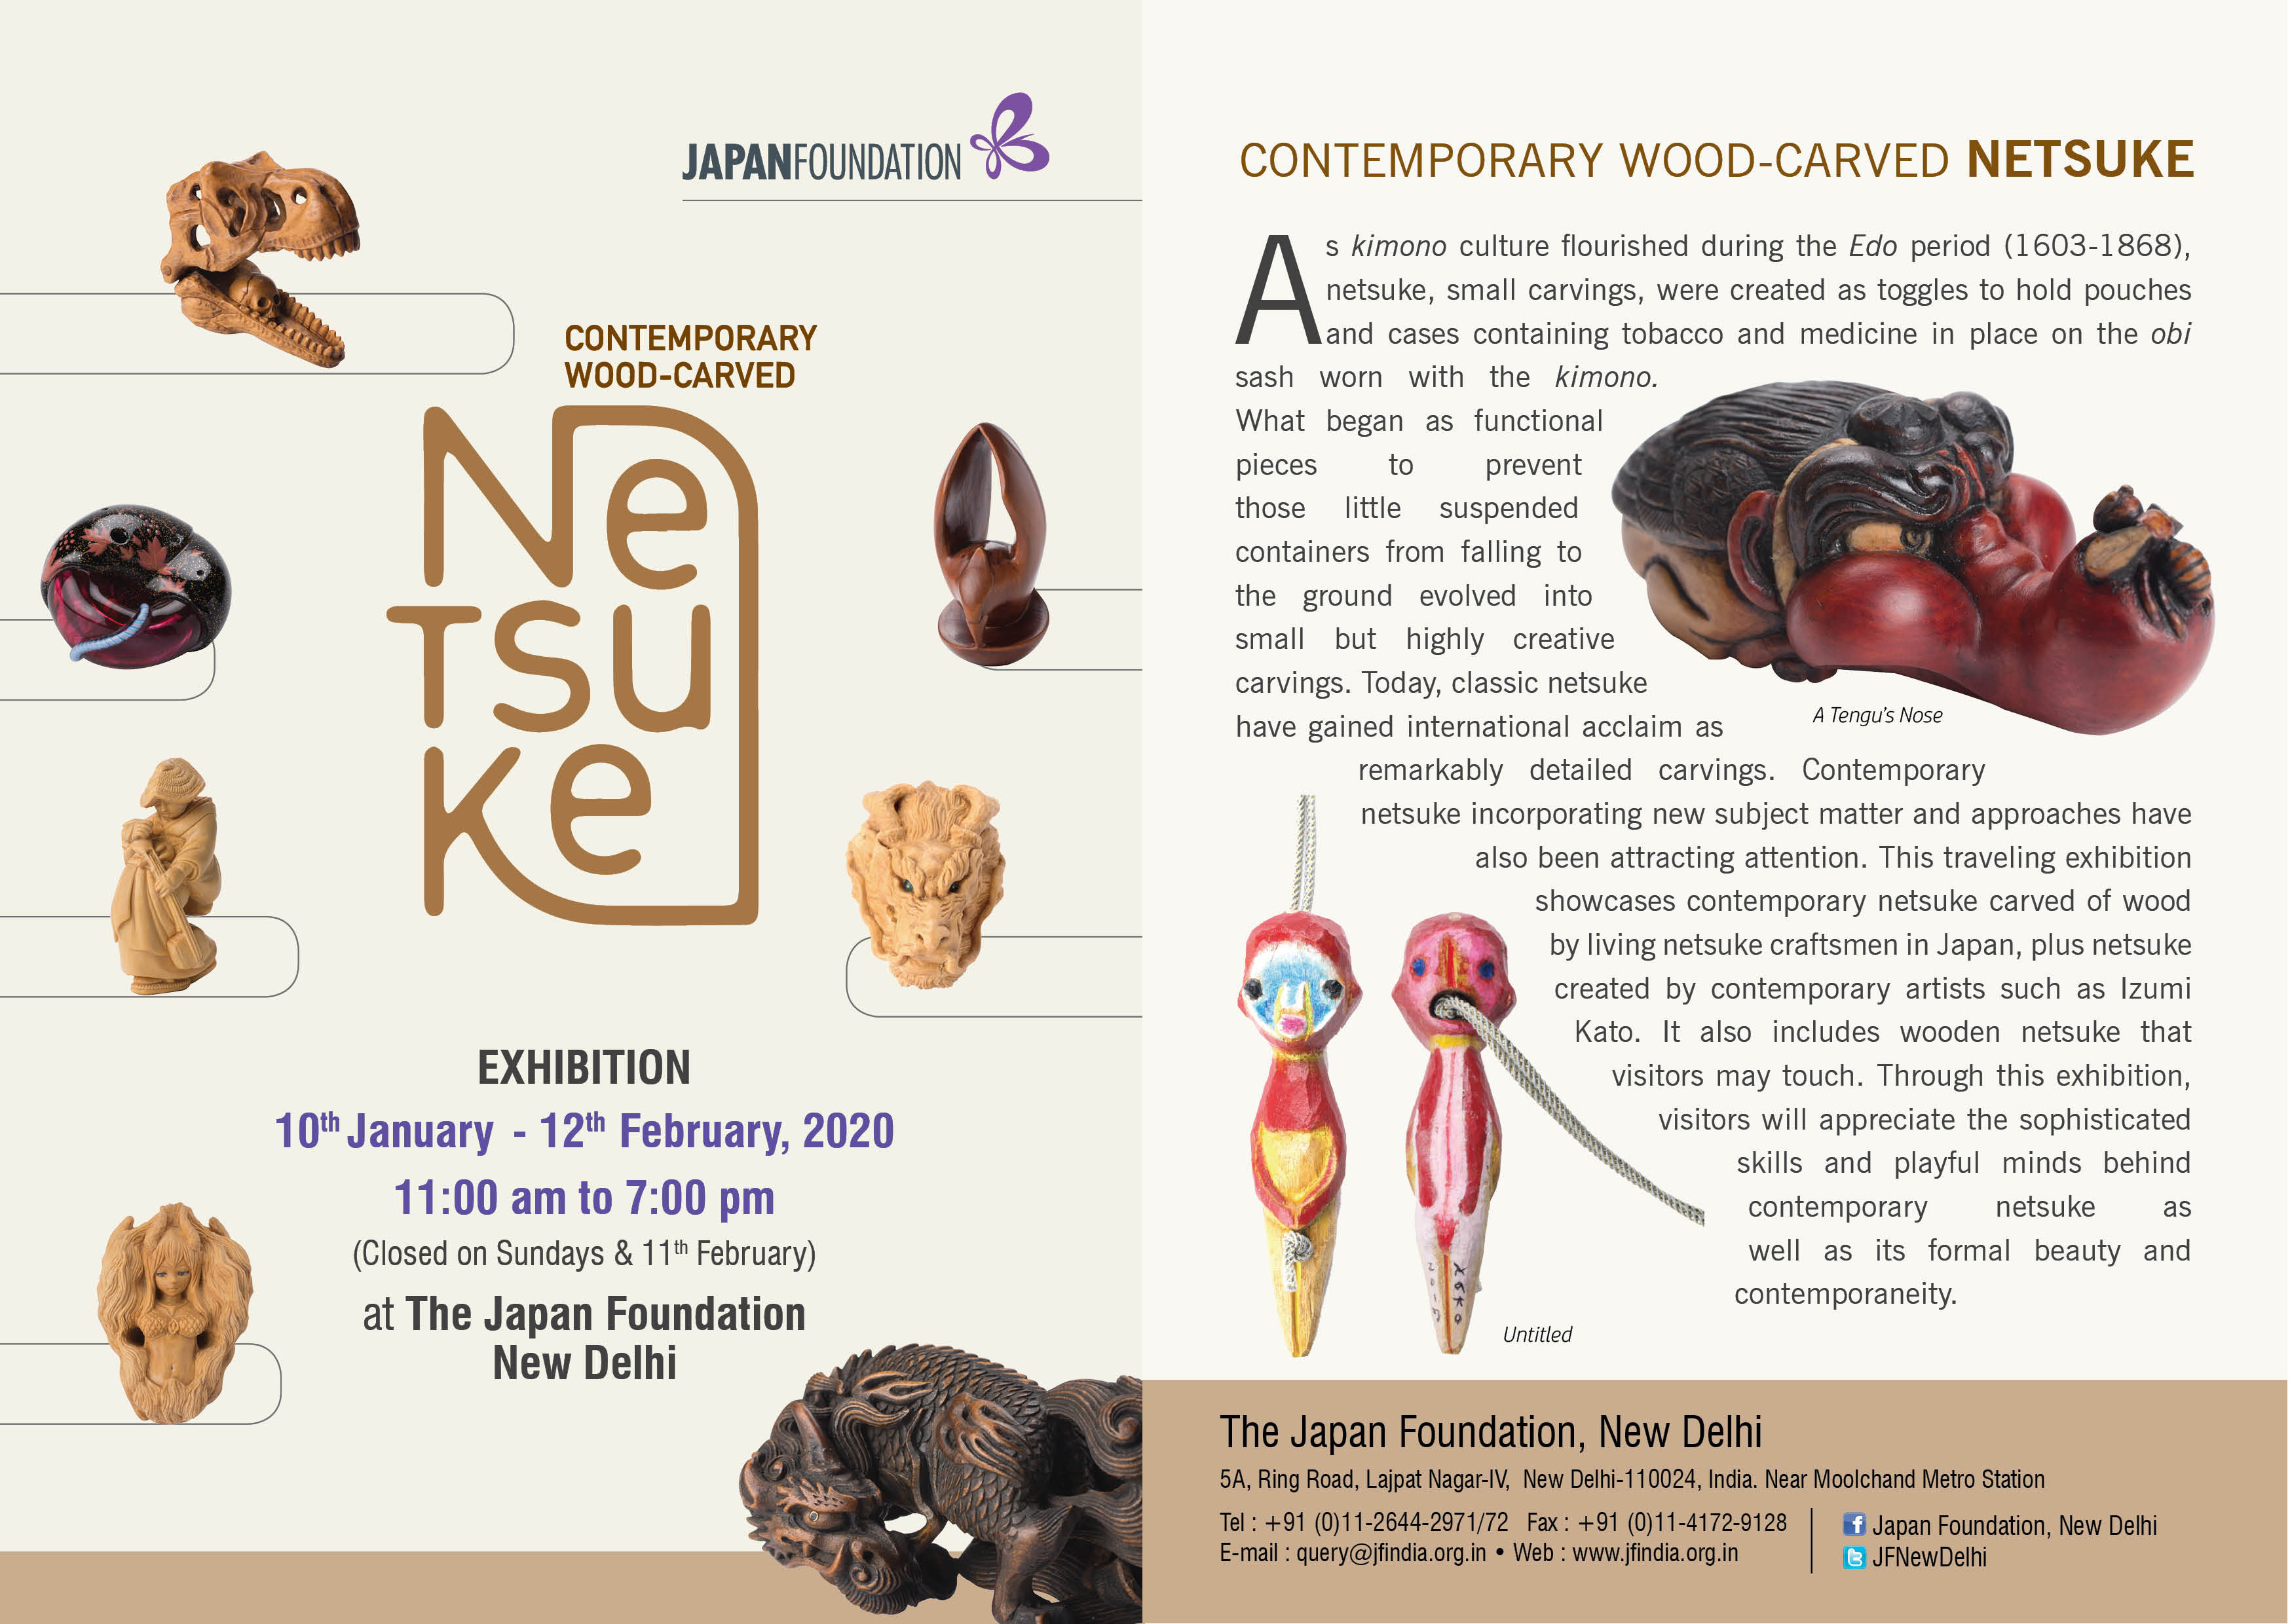 Exhibition: Netsuke ~Contemporary wood-carved